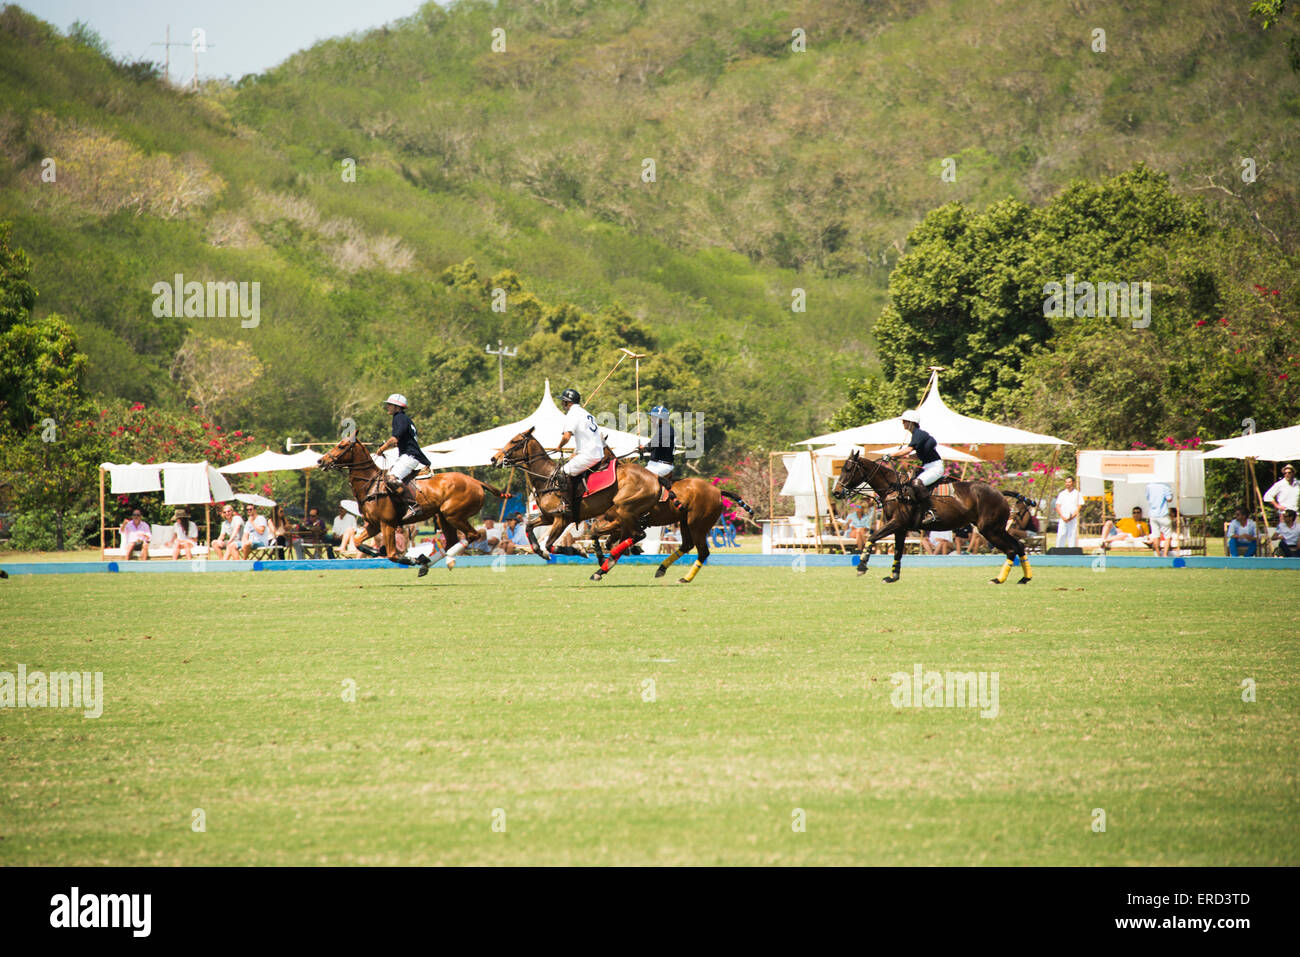 Polo match during Film Festival; Costa Careyes, between Puerta Vallarta and Manzanillo, Mexico. - Stock Image